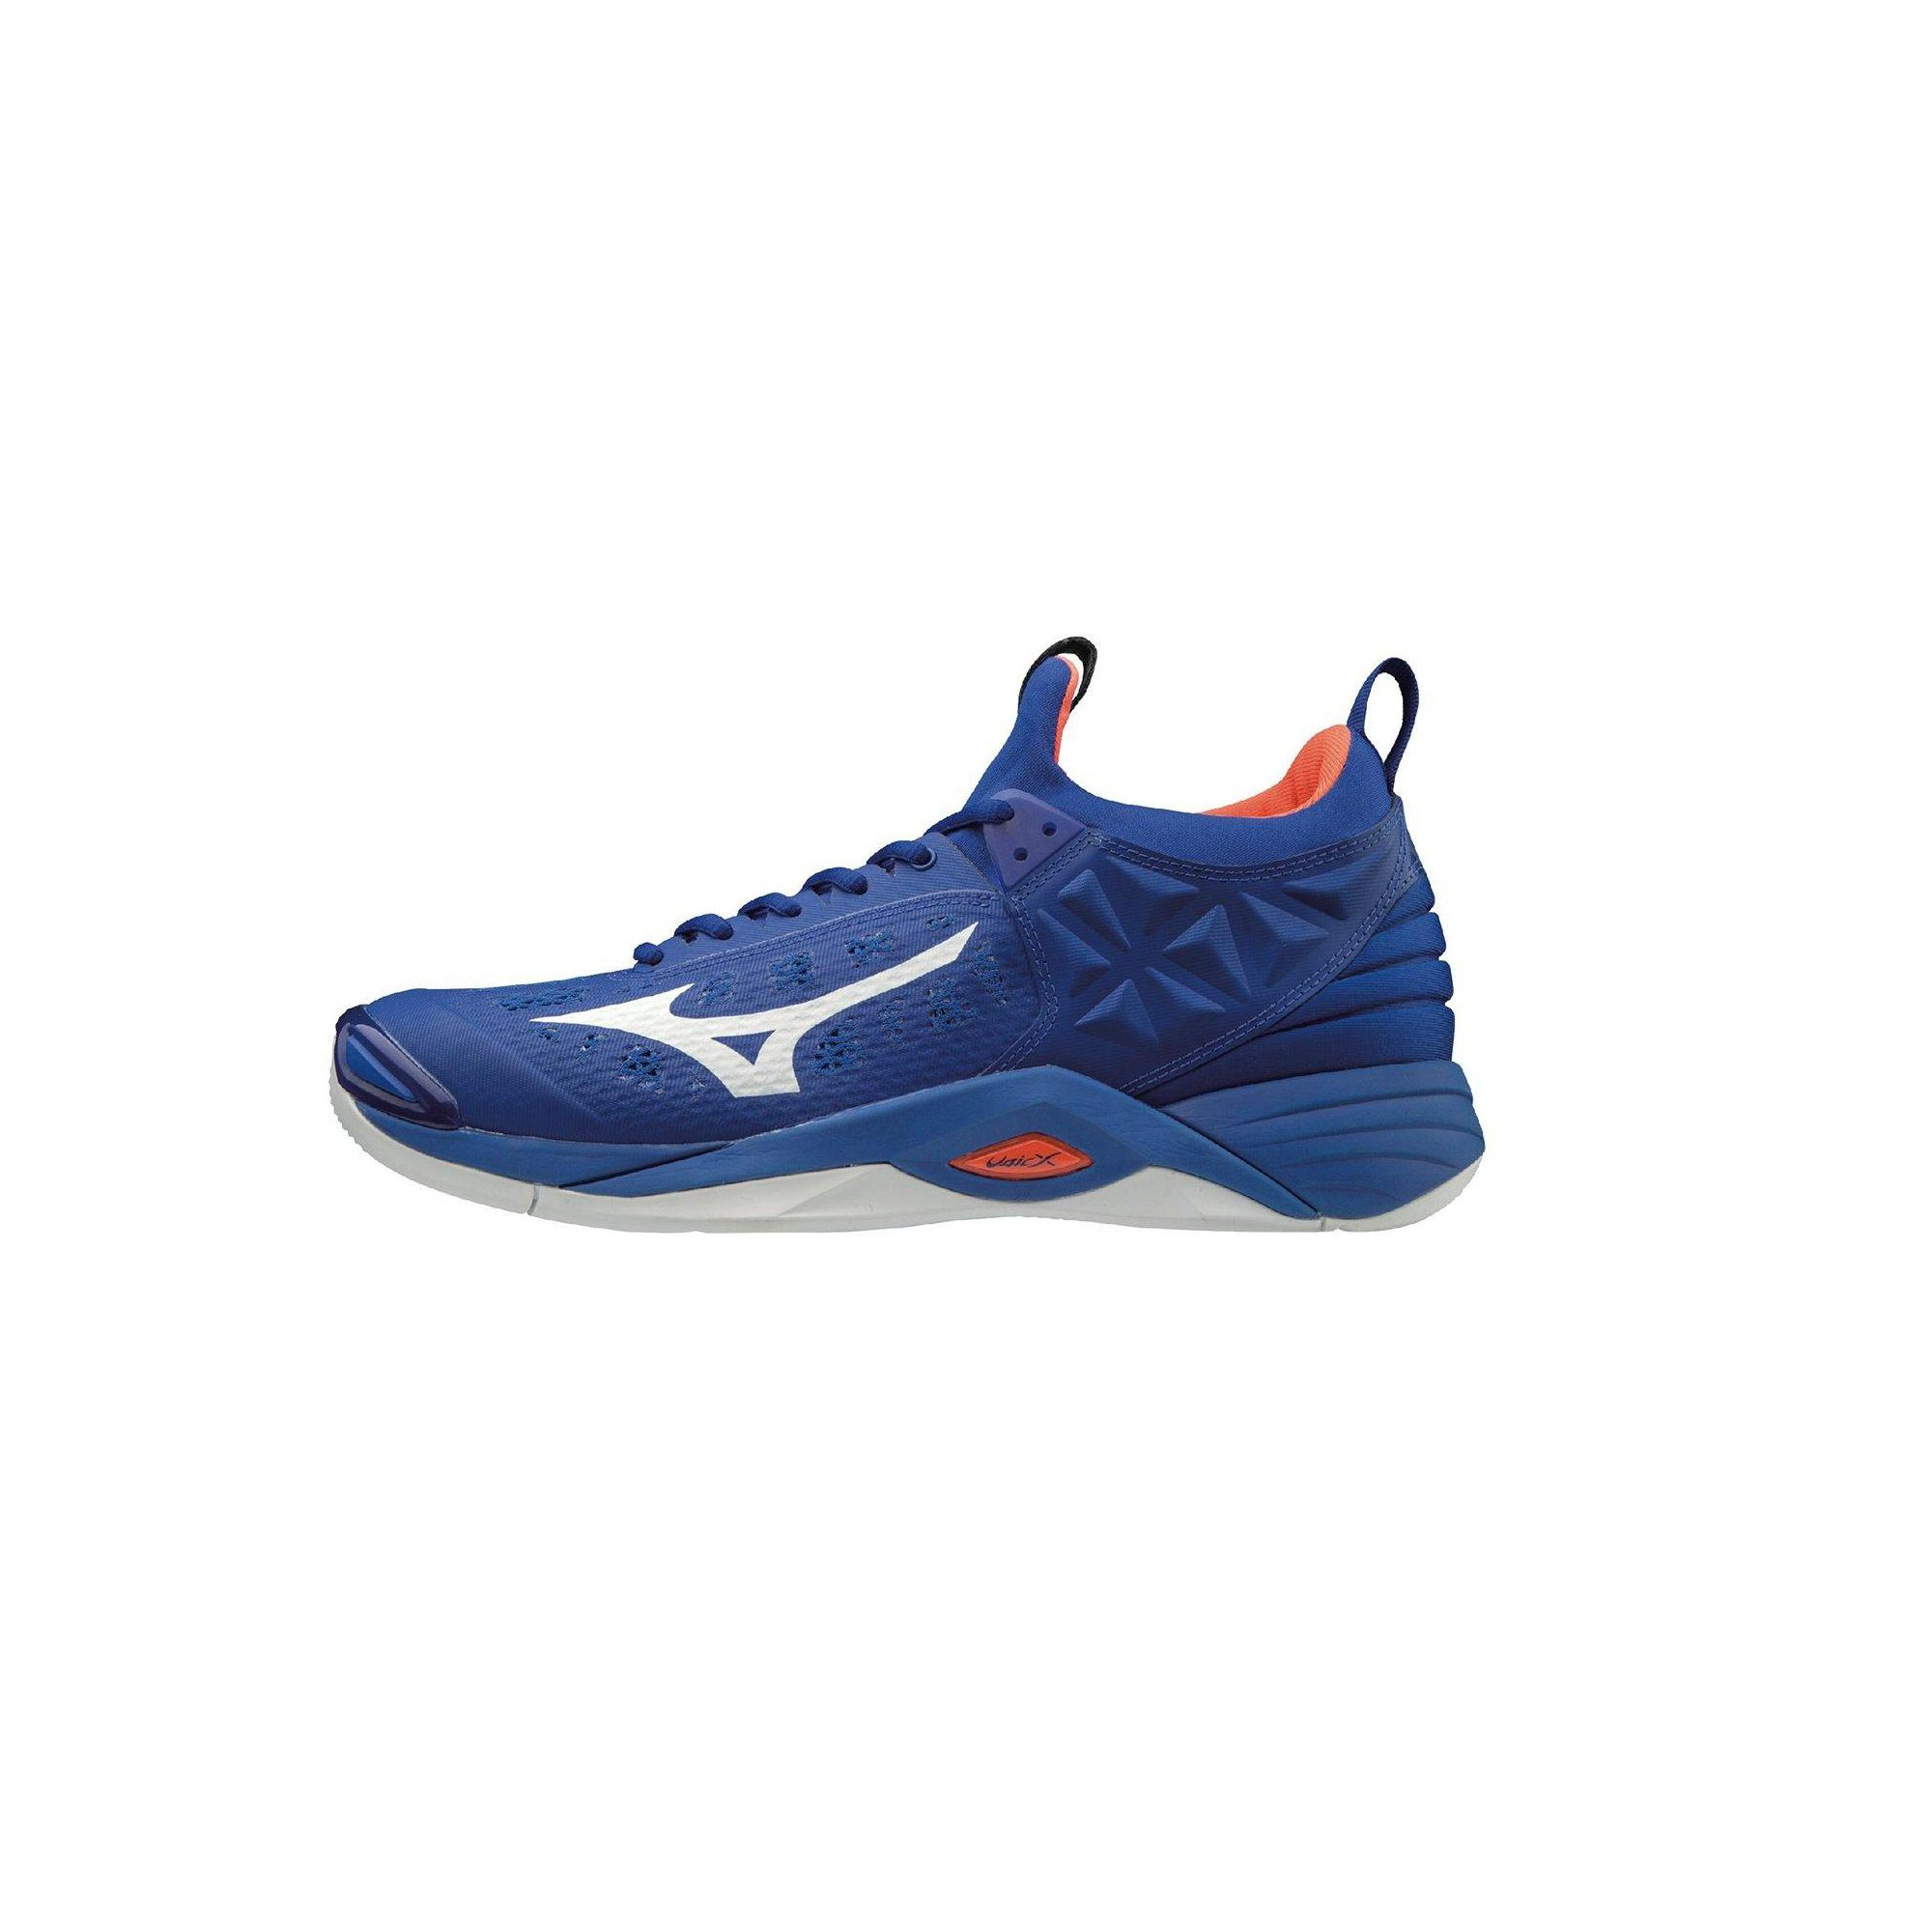 Mizuno Mens Volleyball Shoes Wave Momentum Volleyball Shoe 430261 Size 14 Royal Orange 5220 Volleyball Shoes Mens Volleyball Shoes Shoes